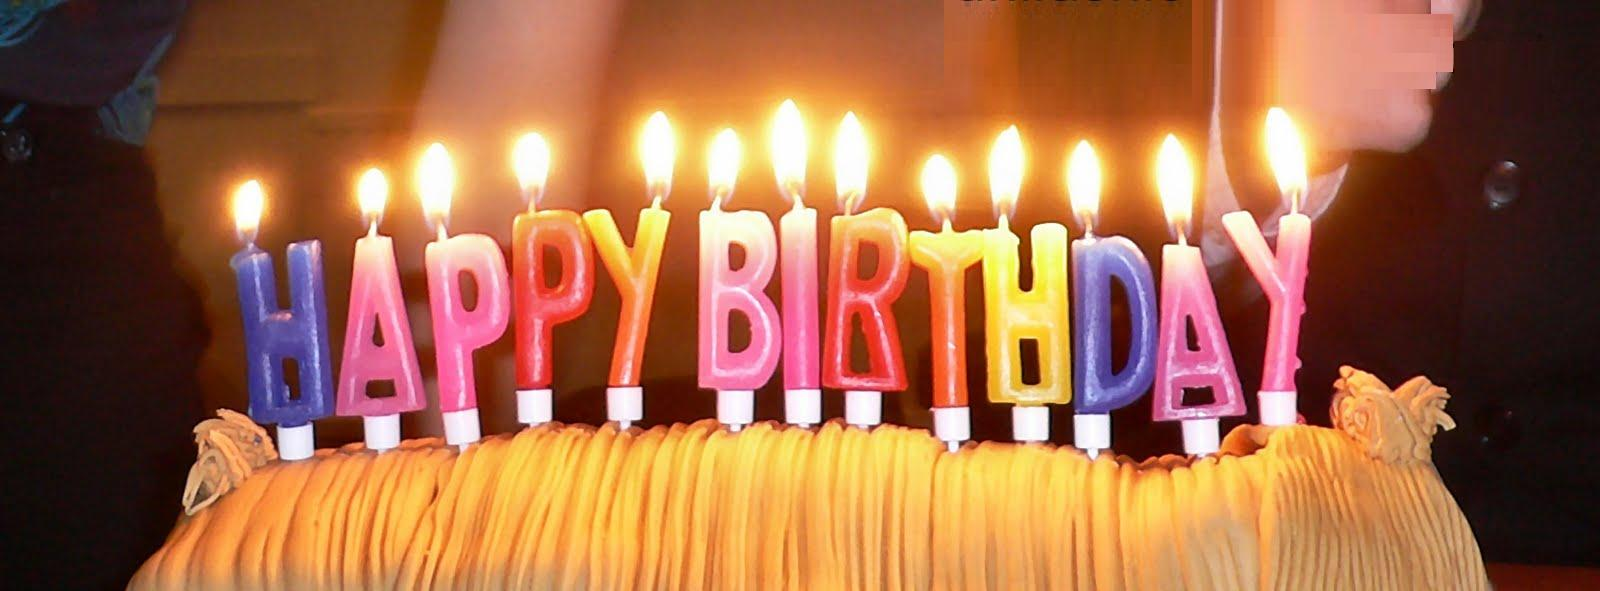 Birthday HD Wallpapers Free Download